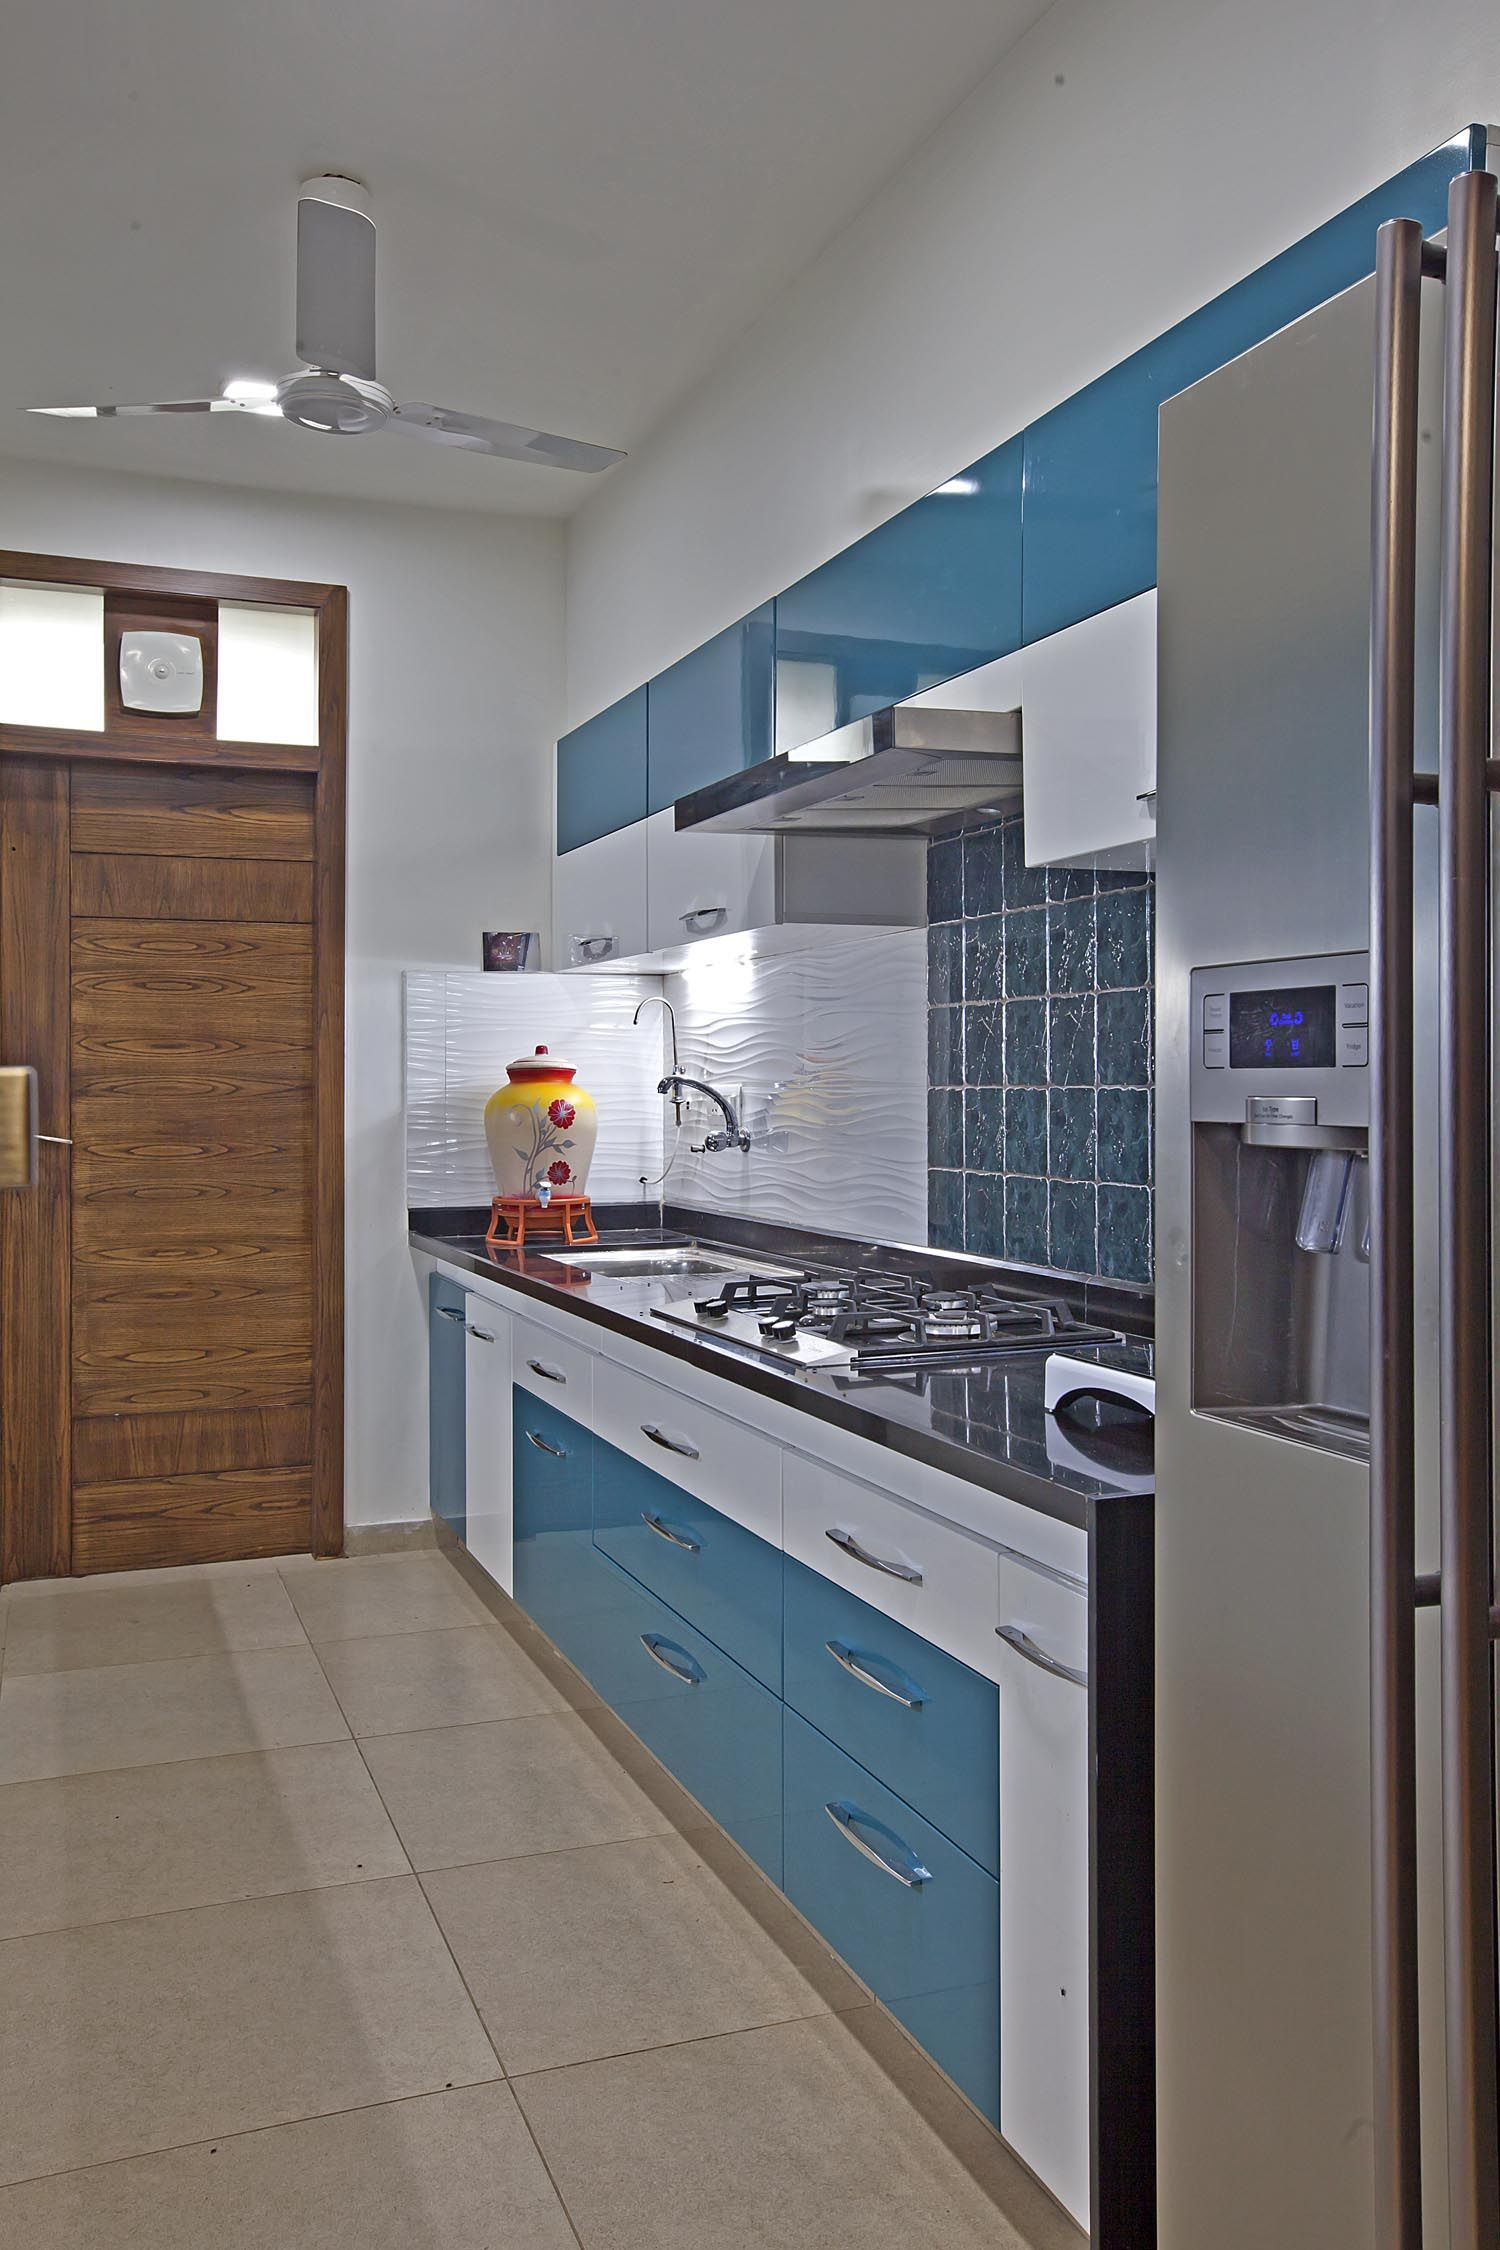 Small Kitchens May Seem To Be A Very Difficult Design